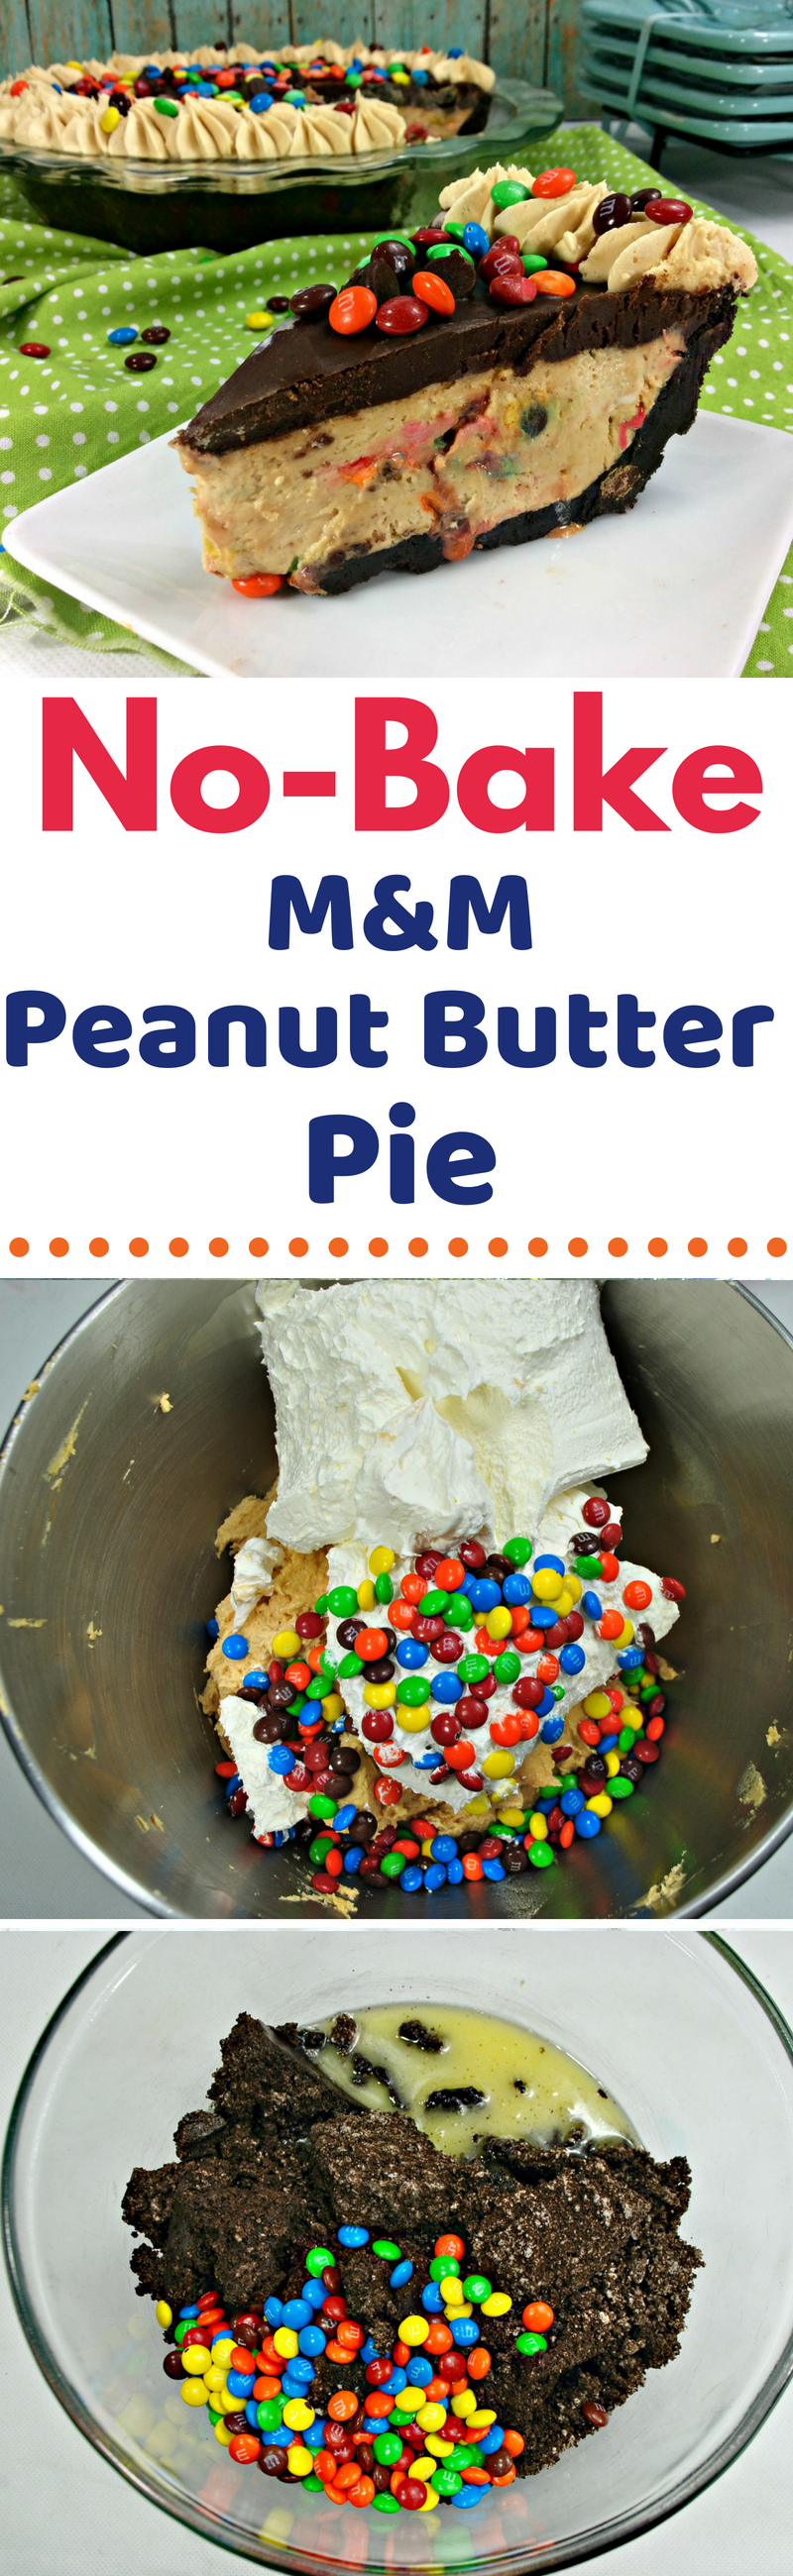 This no-bake peanut butter pie recipe is a family favorite because it's got a decadent creamy texture combined with crunchy M&M candy, then topped with a chocolate ganache layer. Perfect for any peanut butter lover and won't heat up your kitchen. #PeanutButterDessert #DessertRecipe #PieRecipe #PeanutButterPie #NoBakeRecipe #NoBakePie